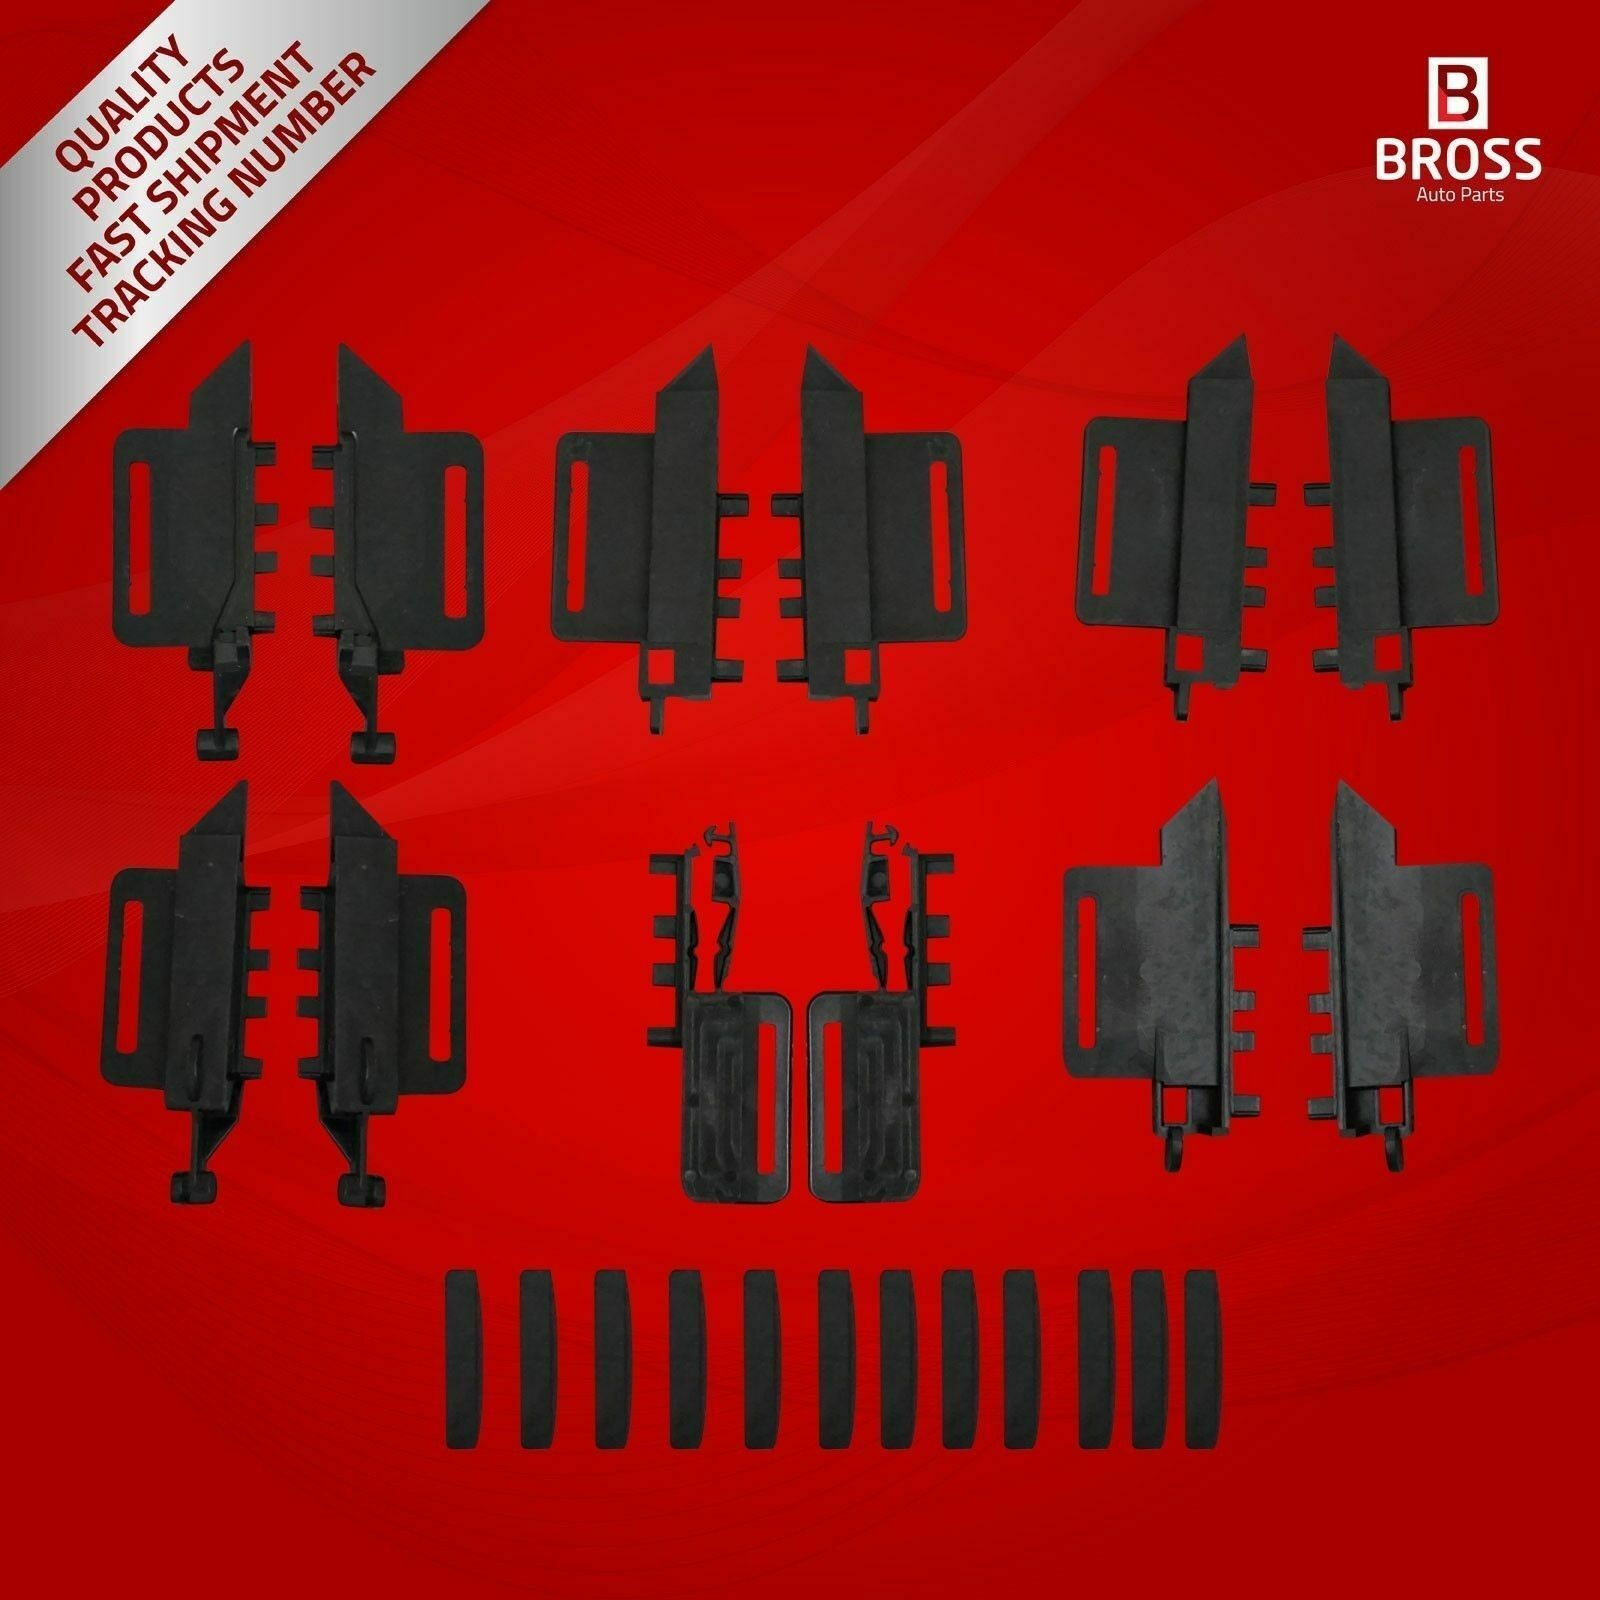 BSR45 Roof Curtain Repair 24 Pieces Set For 307 SW